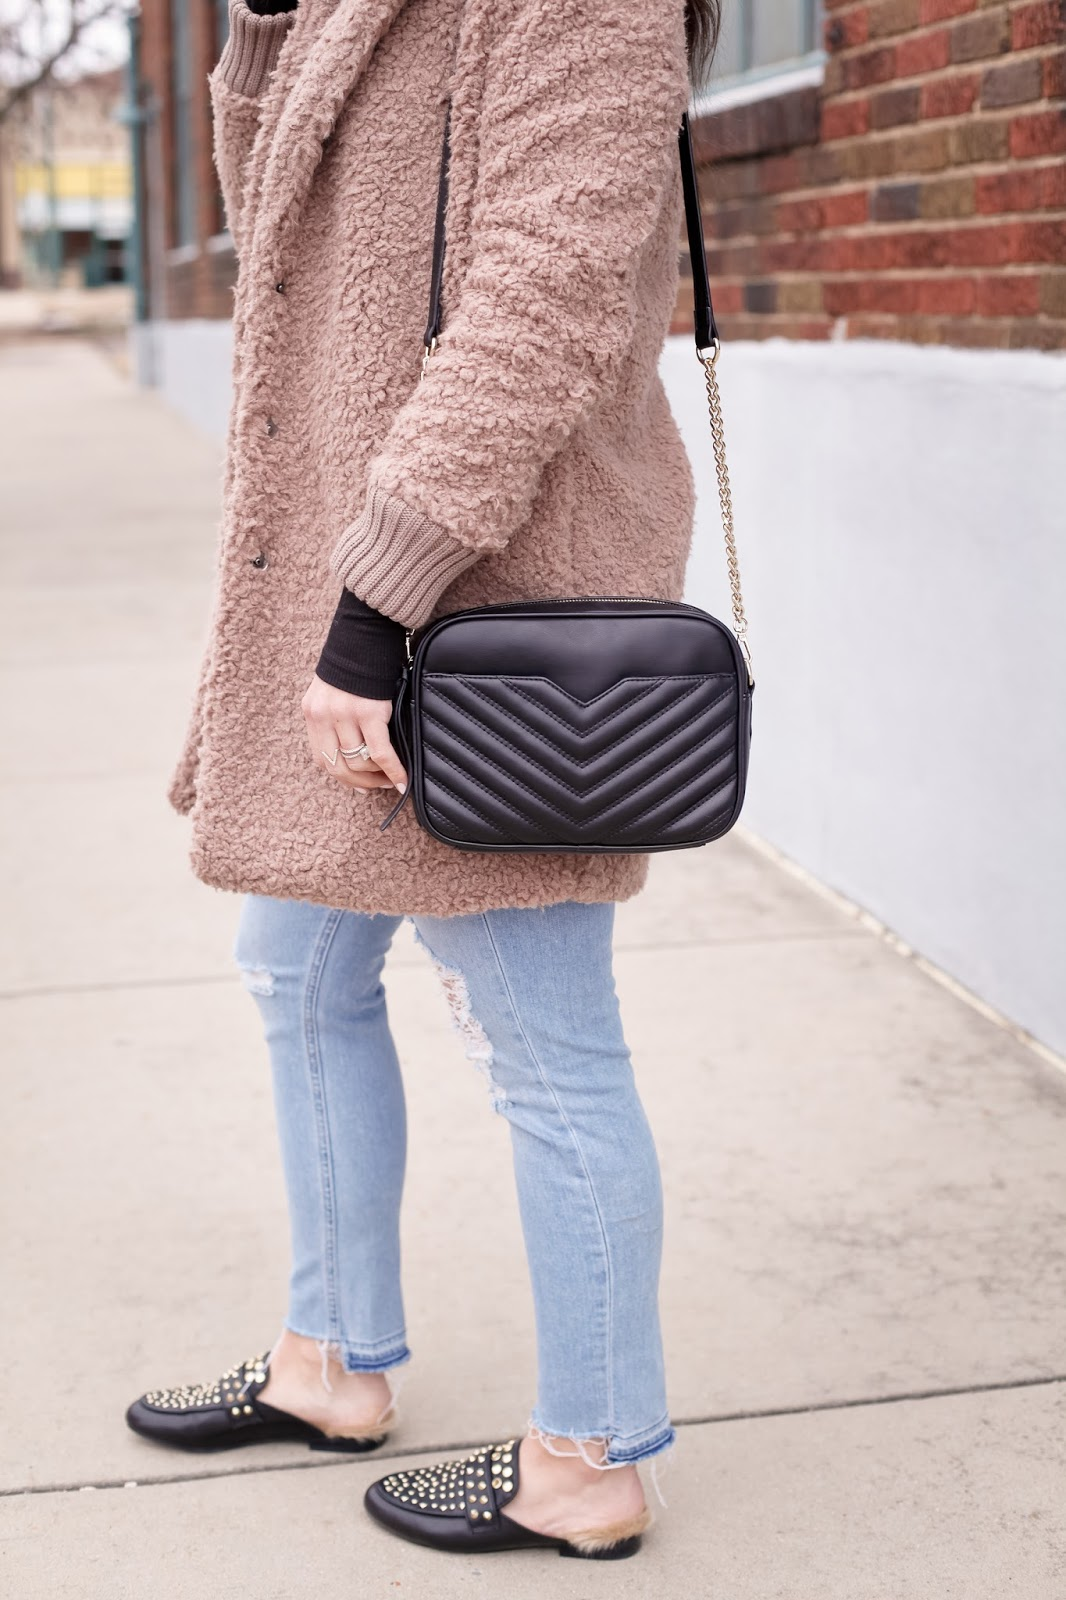 Stylish ways to style a teddy coat.